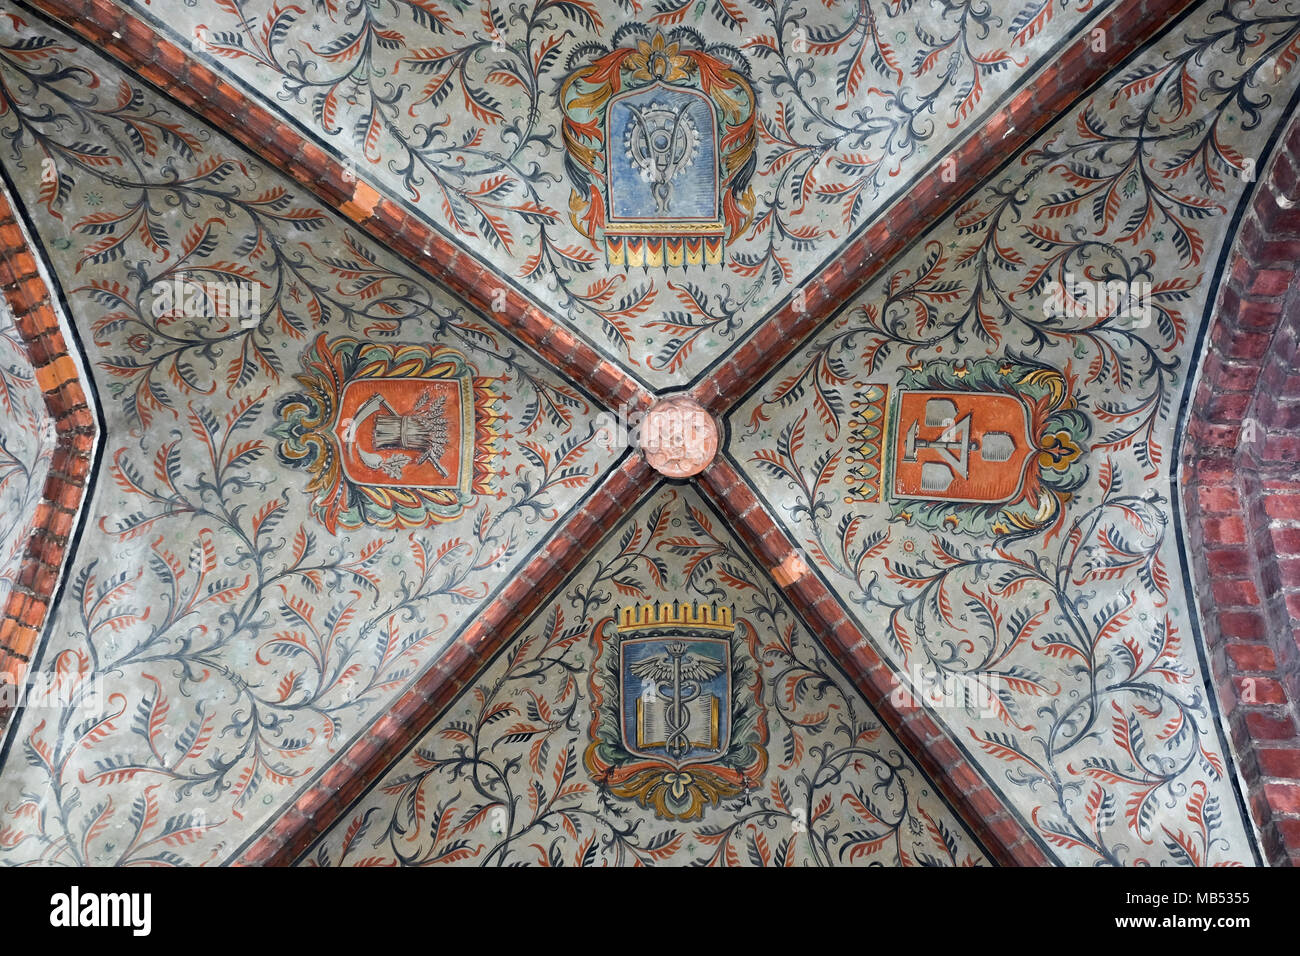 Decorated vault, ceiling in the Gerichtslaube, 15th century, Town Hall, Jüterbog, Brandenburg, Germany - Stock Image